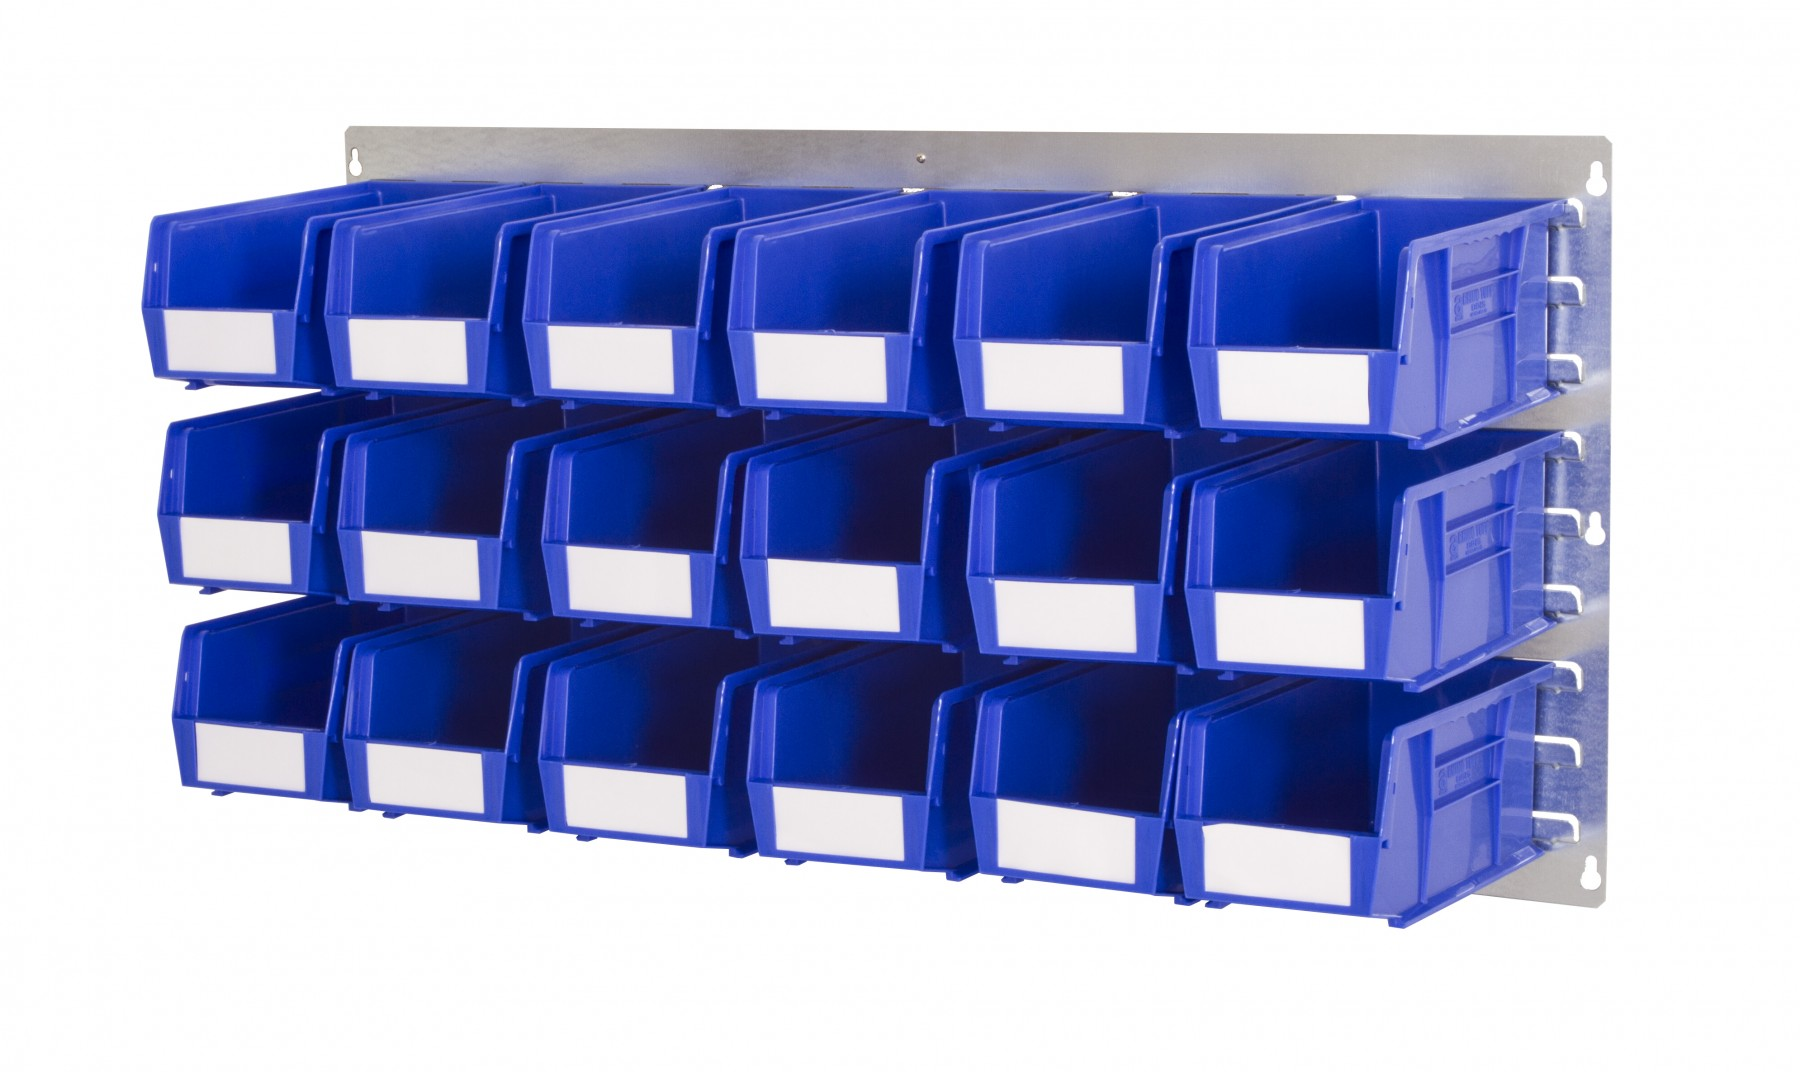 WALL LOUVRE PANELS WITH PLASTIC BINS (AL)